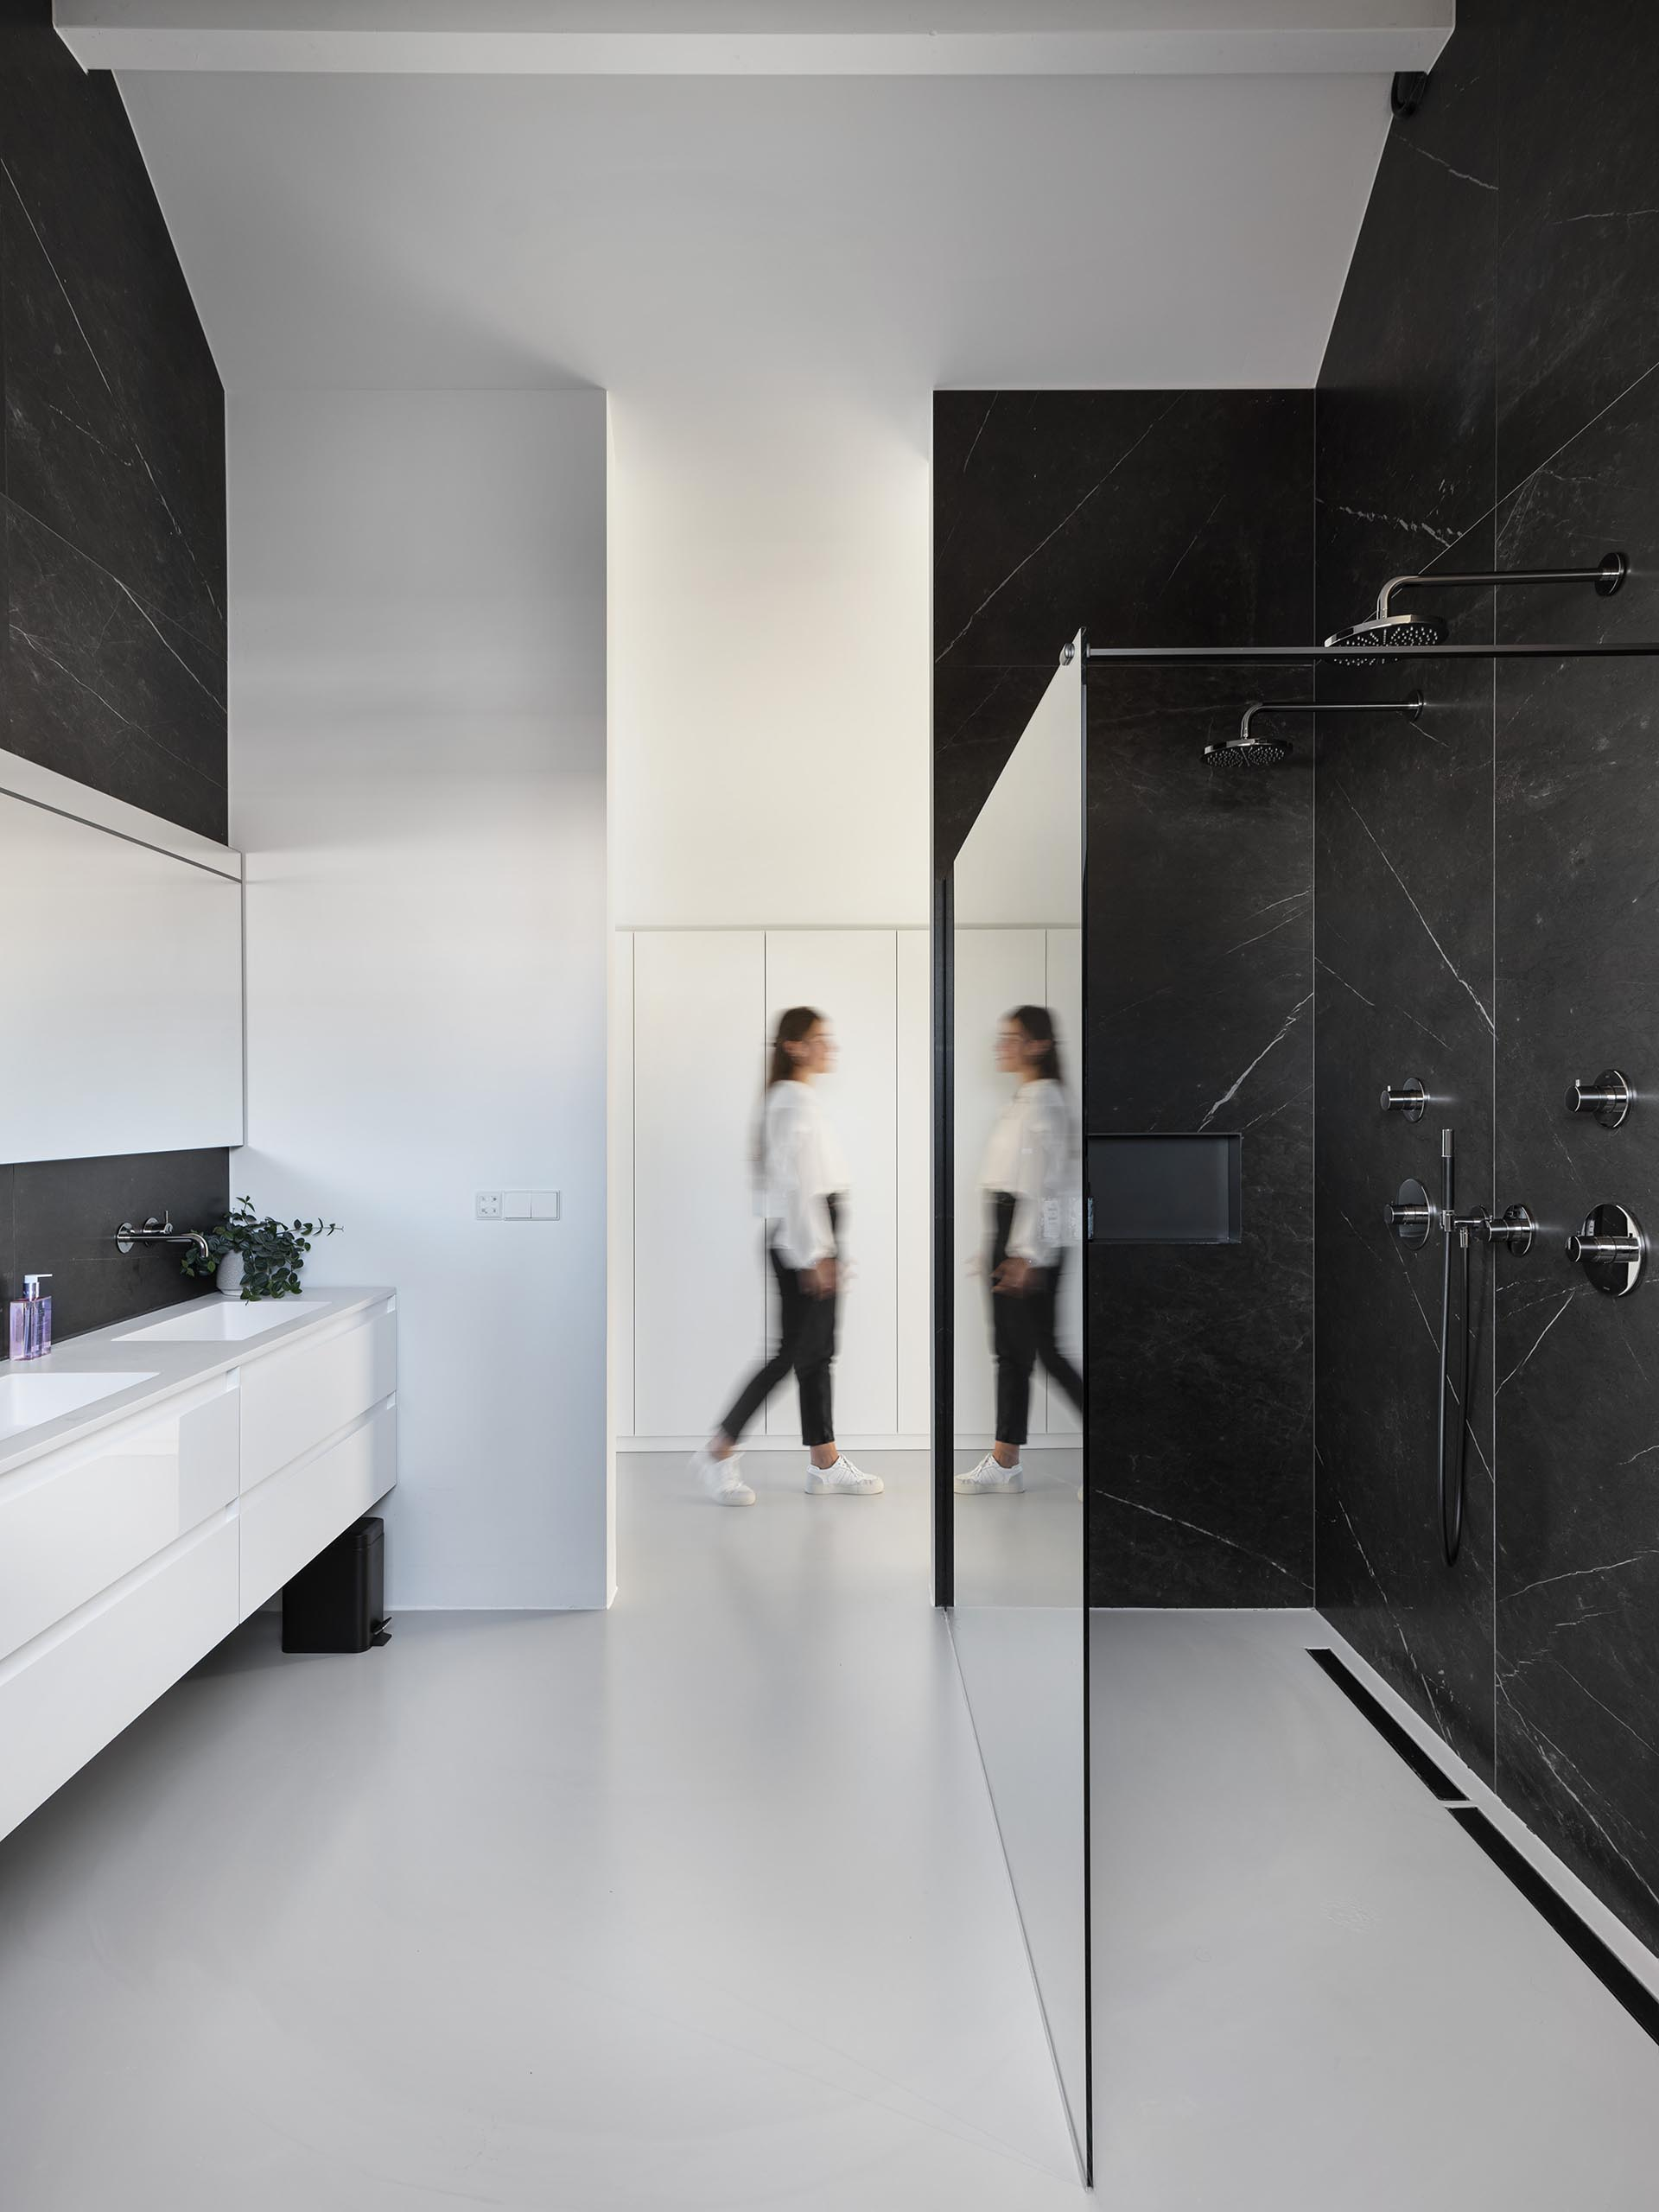 In this modern bathroom, there's black stone on the walls that provides a contrasting element to the white vanity.